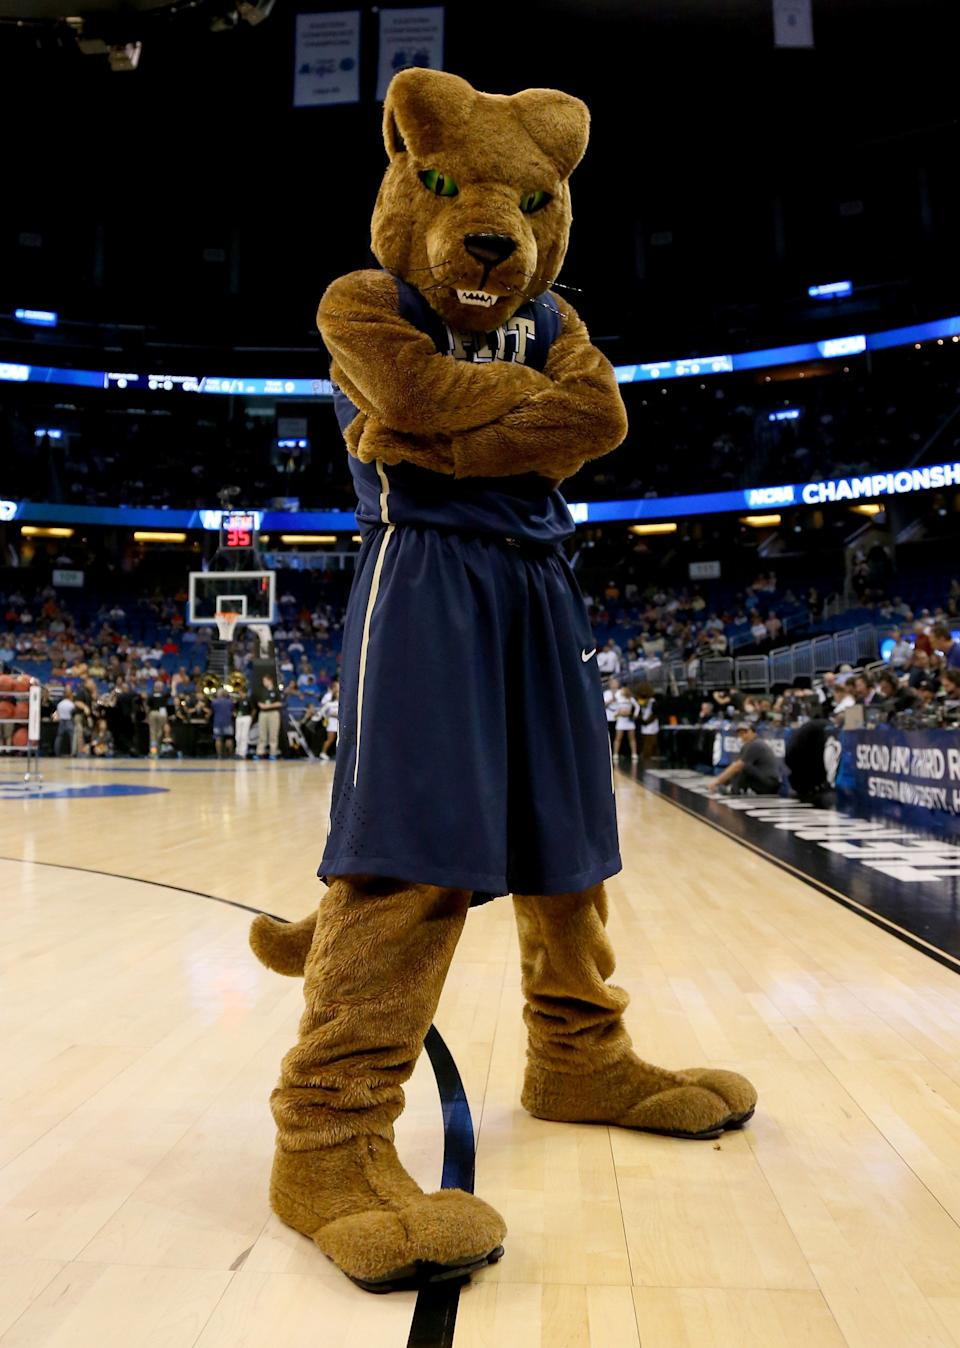 ORLANDO, FL - MARCH 20:  The Pittsburgh Panthers mascot poses before the Panthers take on the Colorado Buffaloes during the second round of the 2014 NCAA Men's Basketball Tournament at Amway Center on March 20, 2014 in Orlando, Florida.  (Photo by Mike Ehrmann/Getty Images)